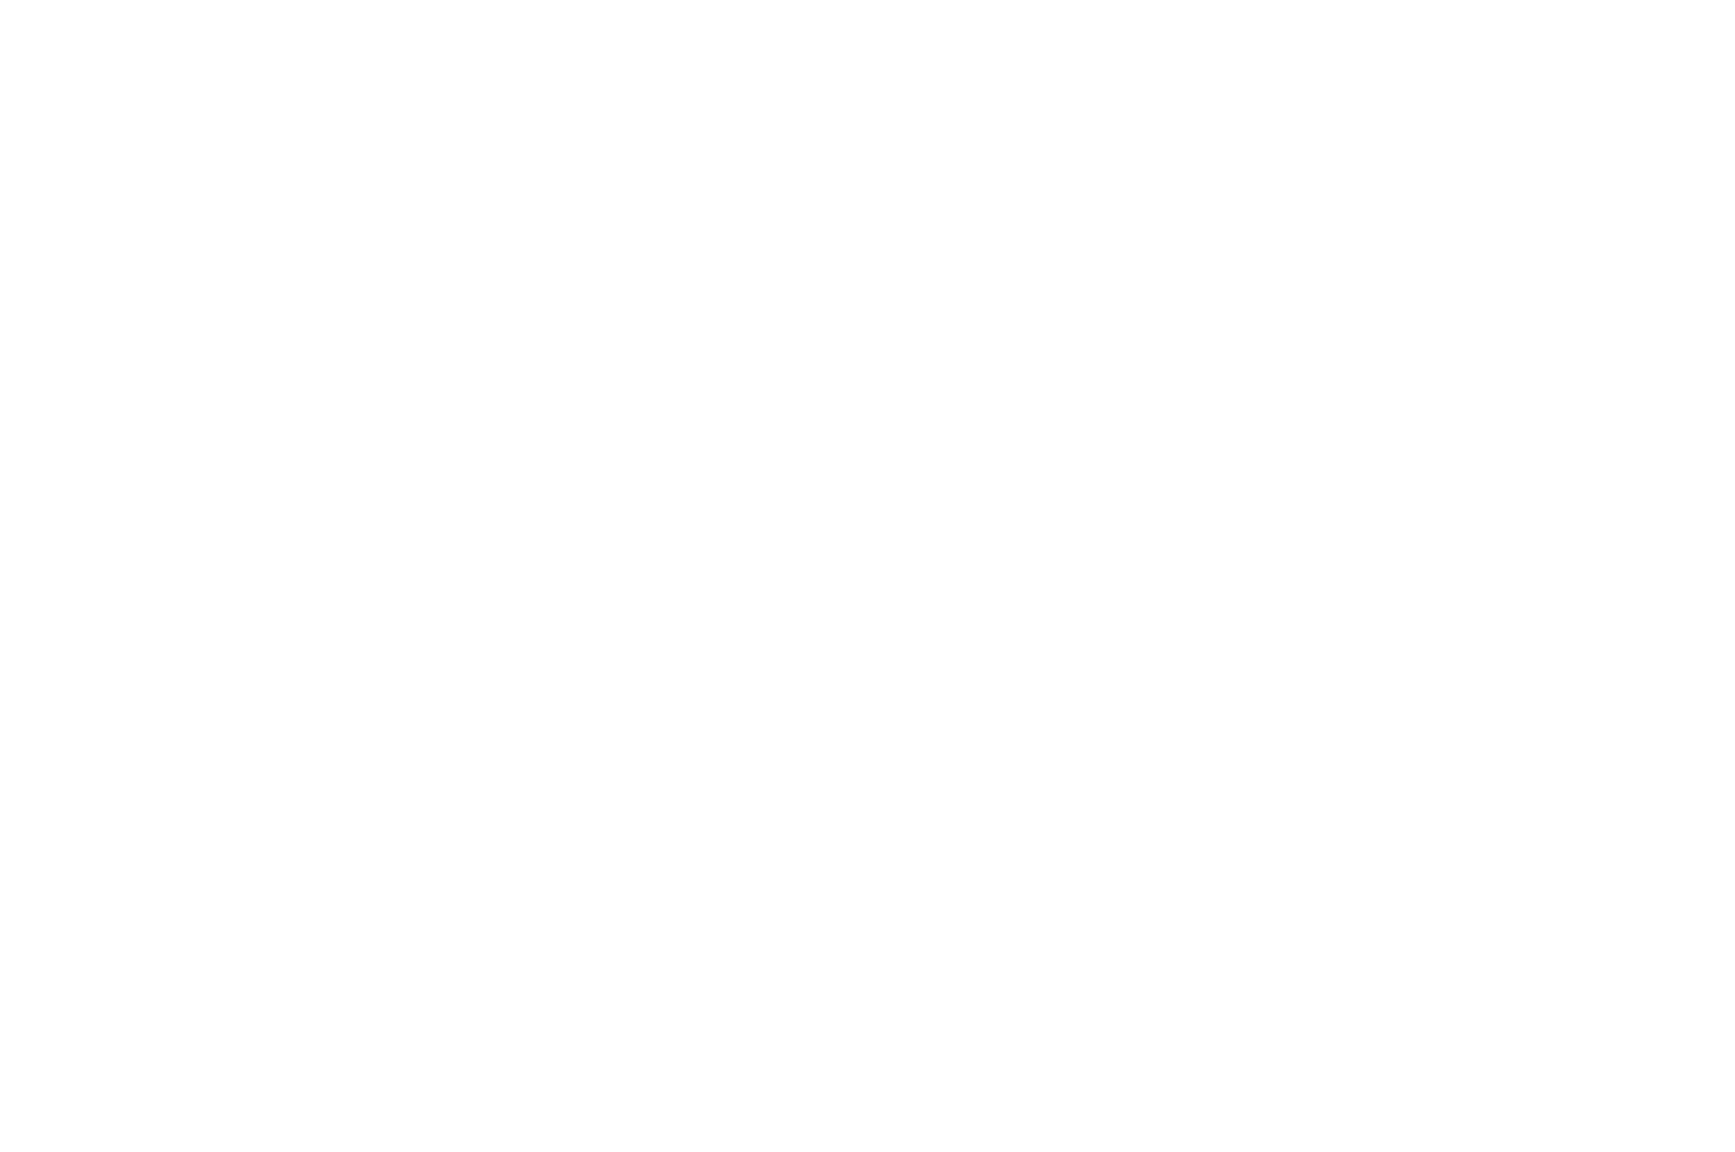 OFFICIAL SELECTION - Montclair Film Festival New Visions - 2018.png